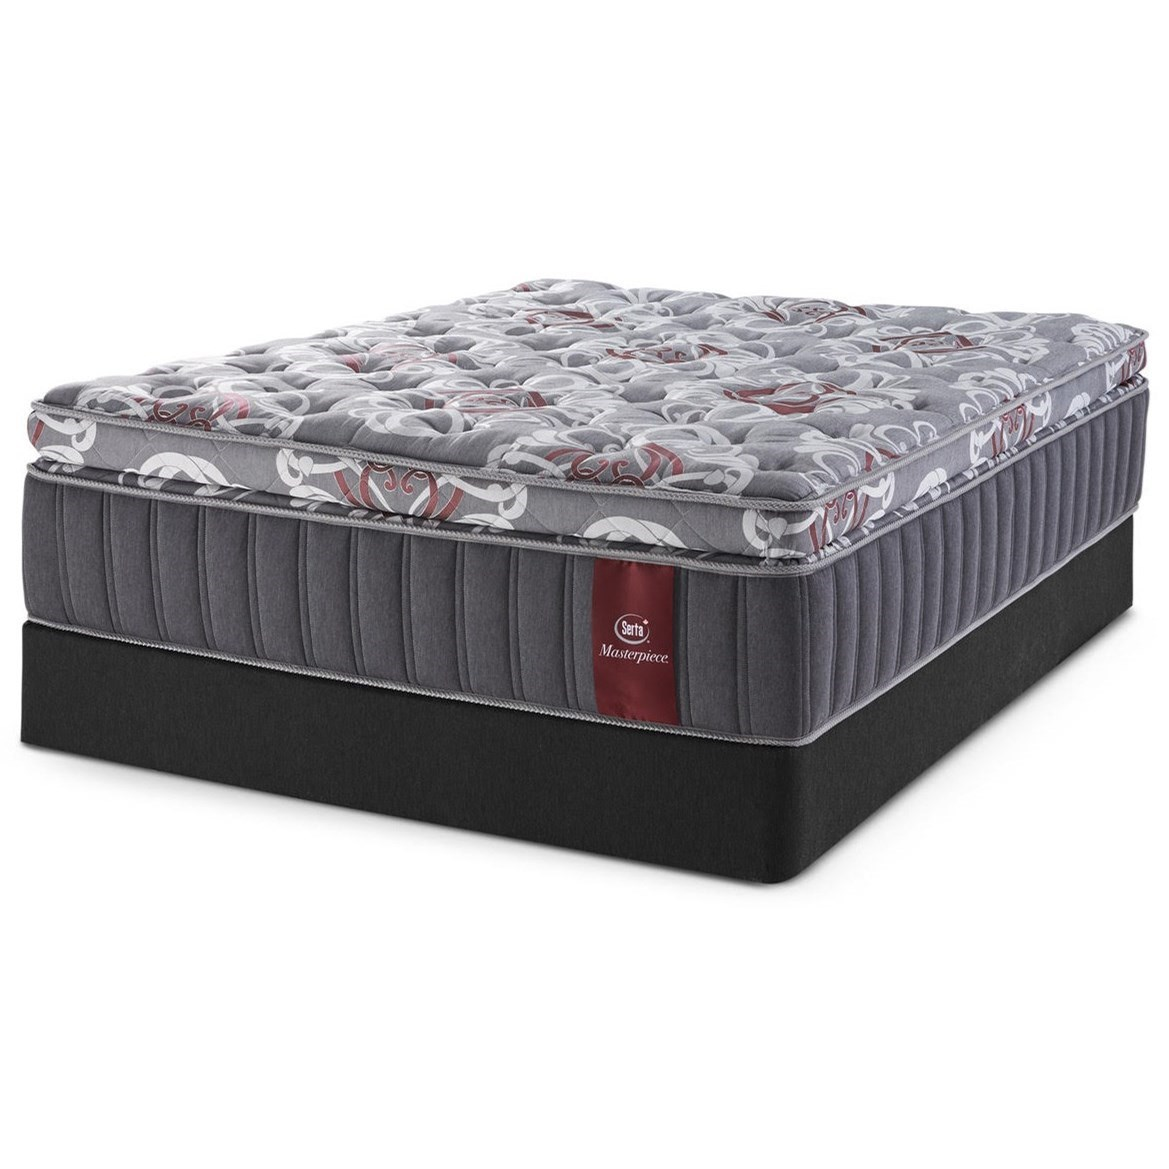 "Queen 15"" Firm SPT Mattress Set"